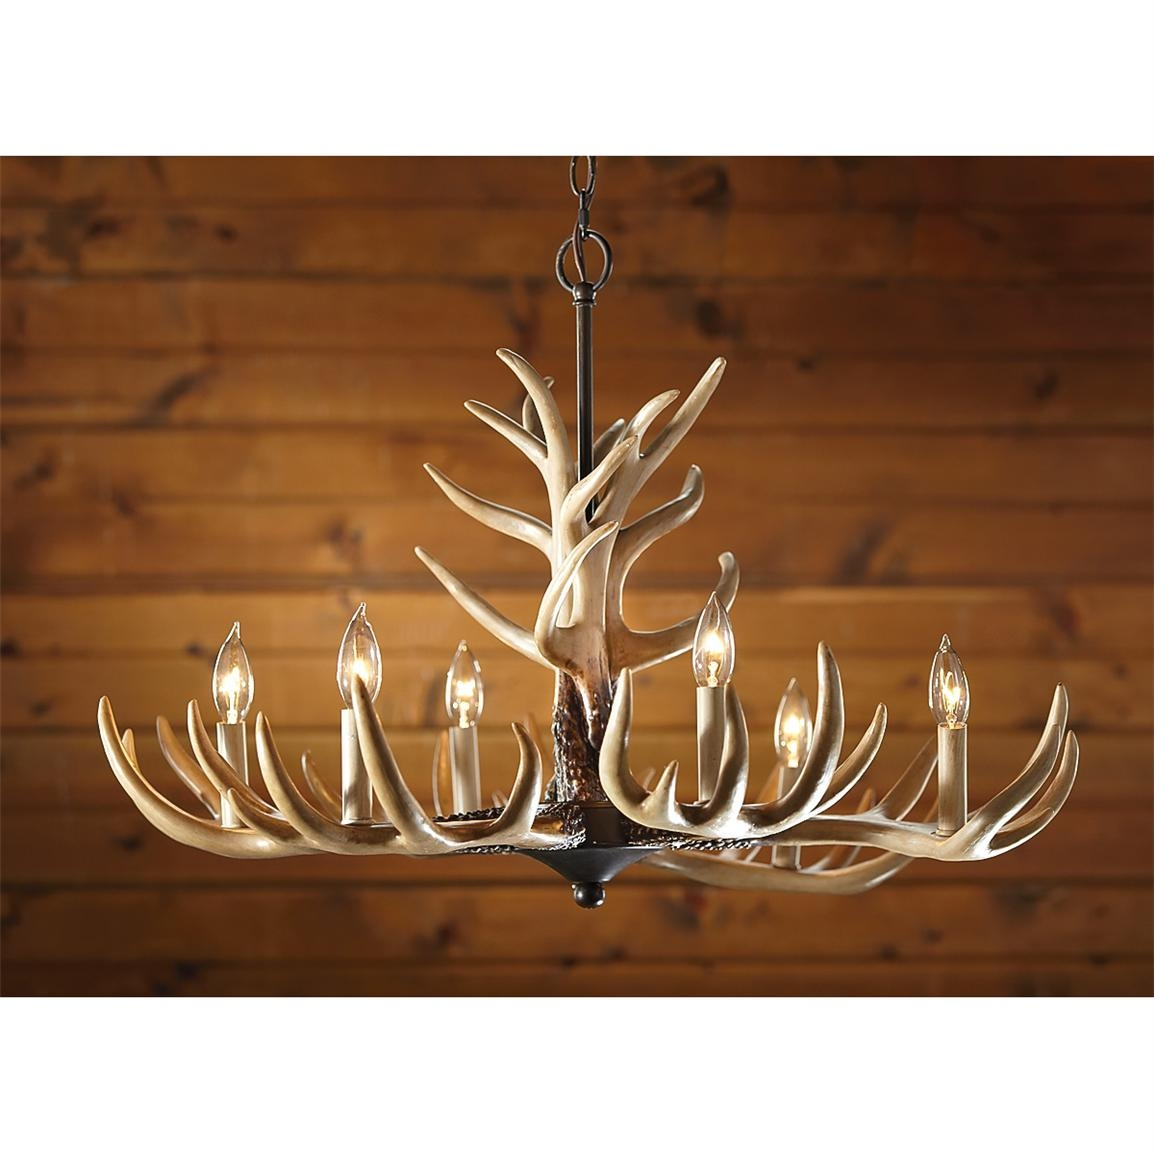 6 Light Antler Chandelier 210035 Lighting At Sportsmans Guide With Regard To Antler Chandelier (Image 2 of 15)